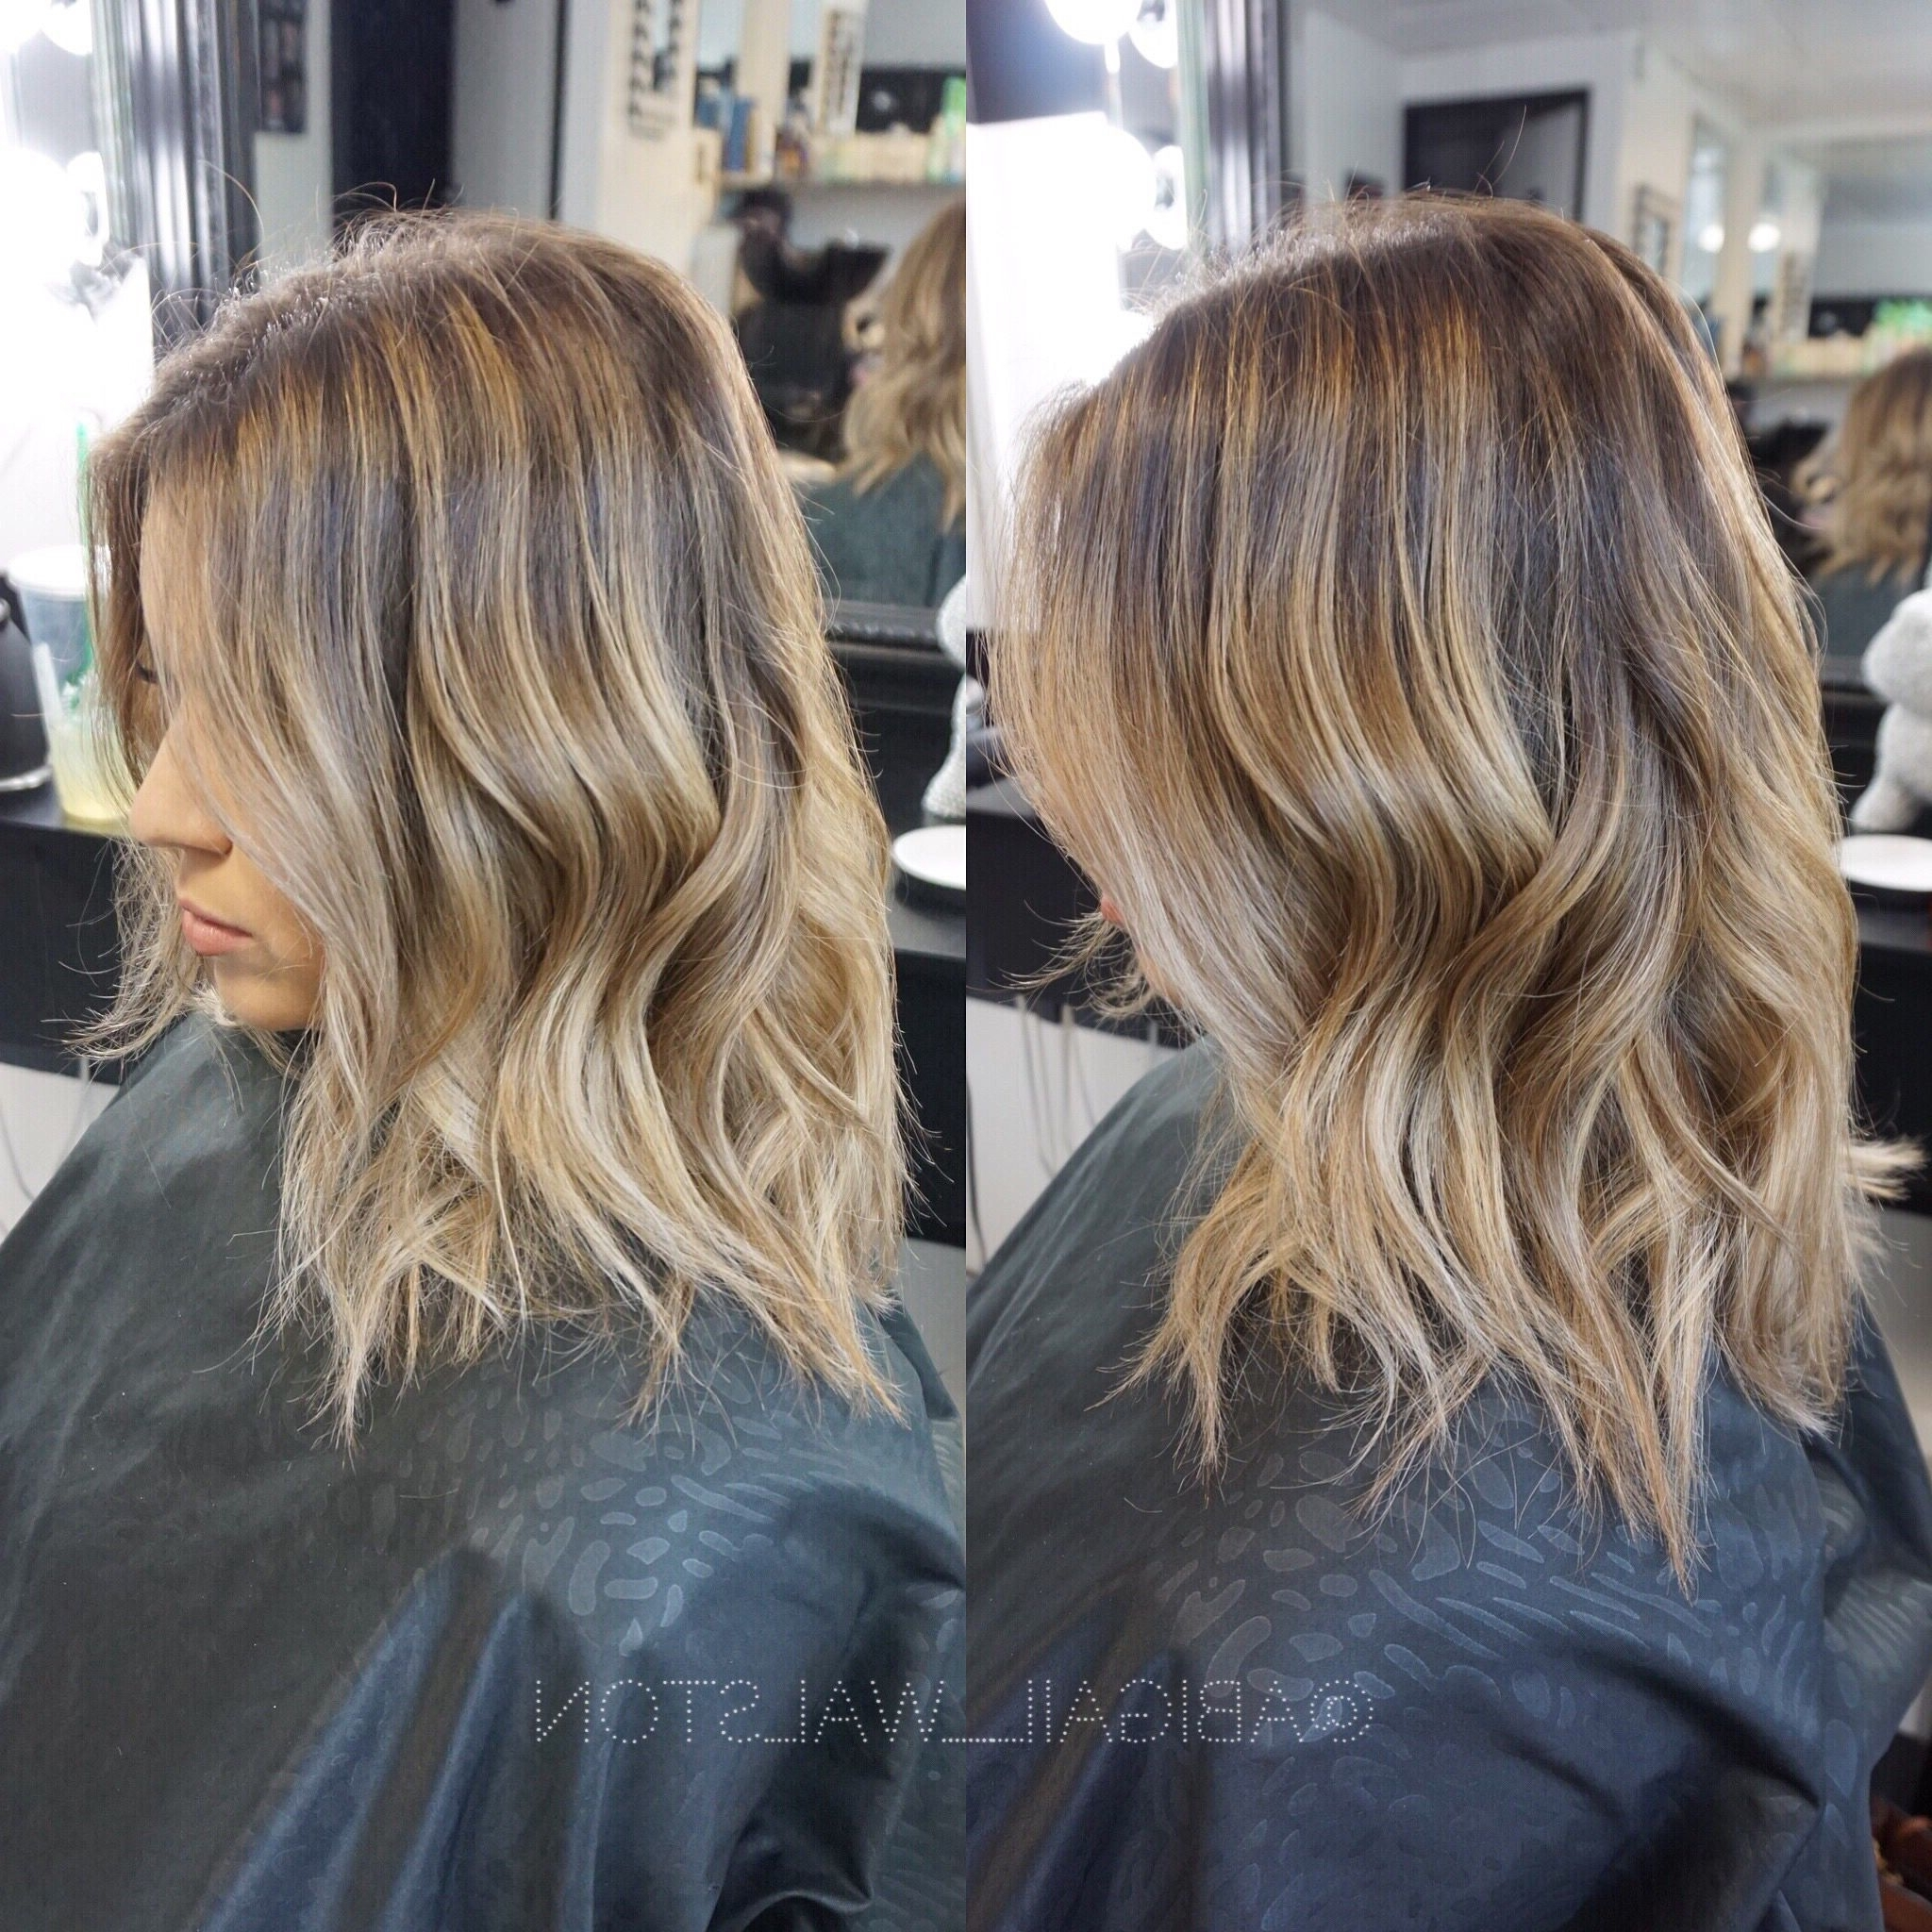 2018 Cool Dirty Blonde Balayage Hairstyles Regarding Cool Toned Sandy Blonde Babylights + Balayage Color Melt (View 8 of 20)